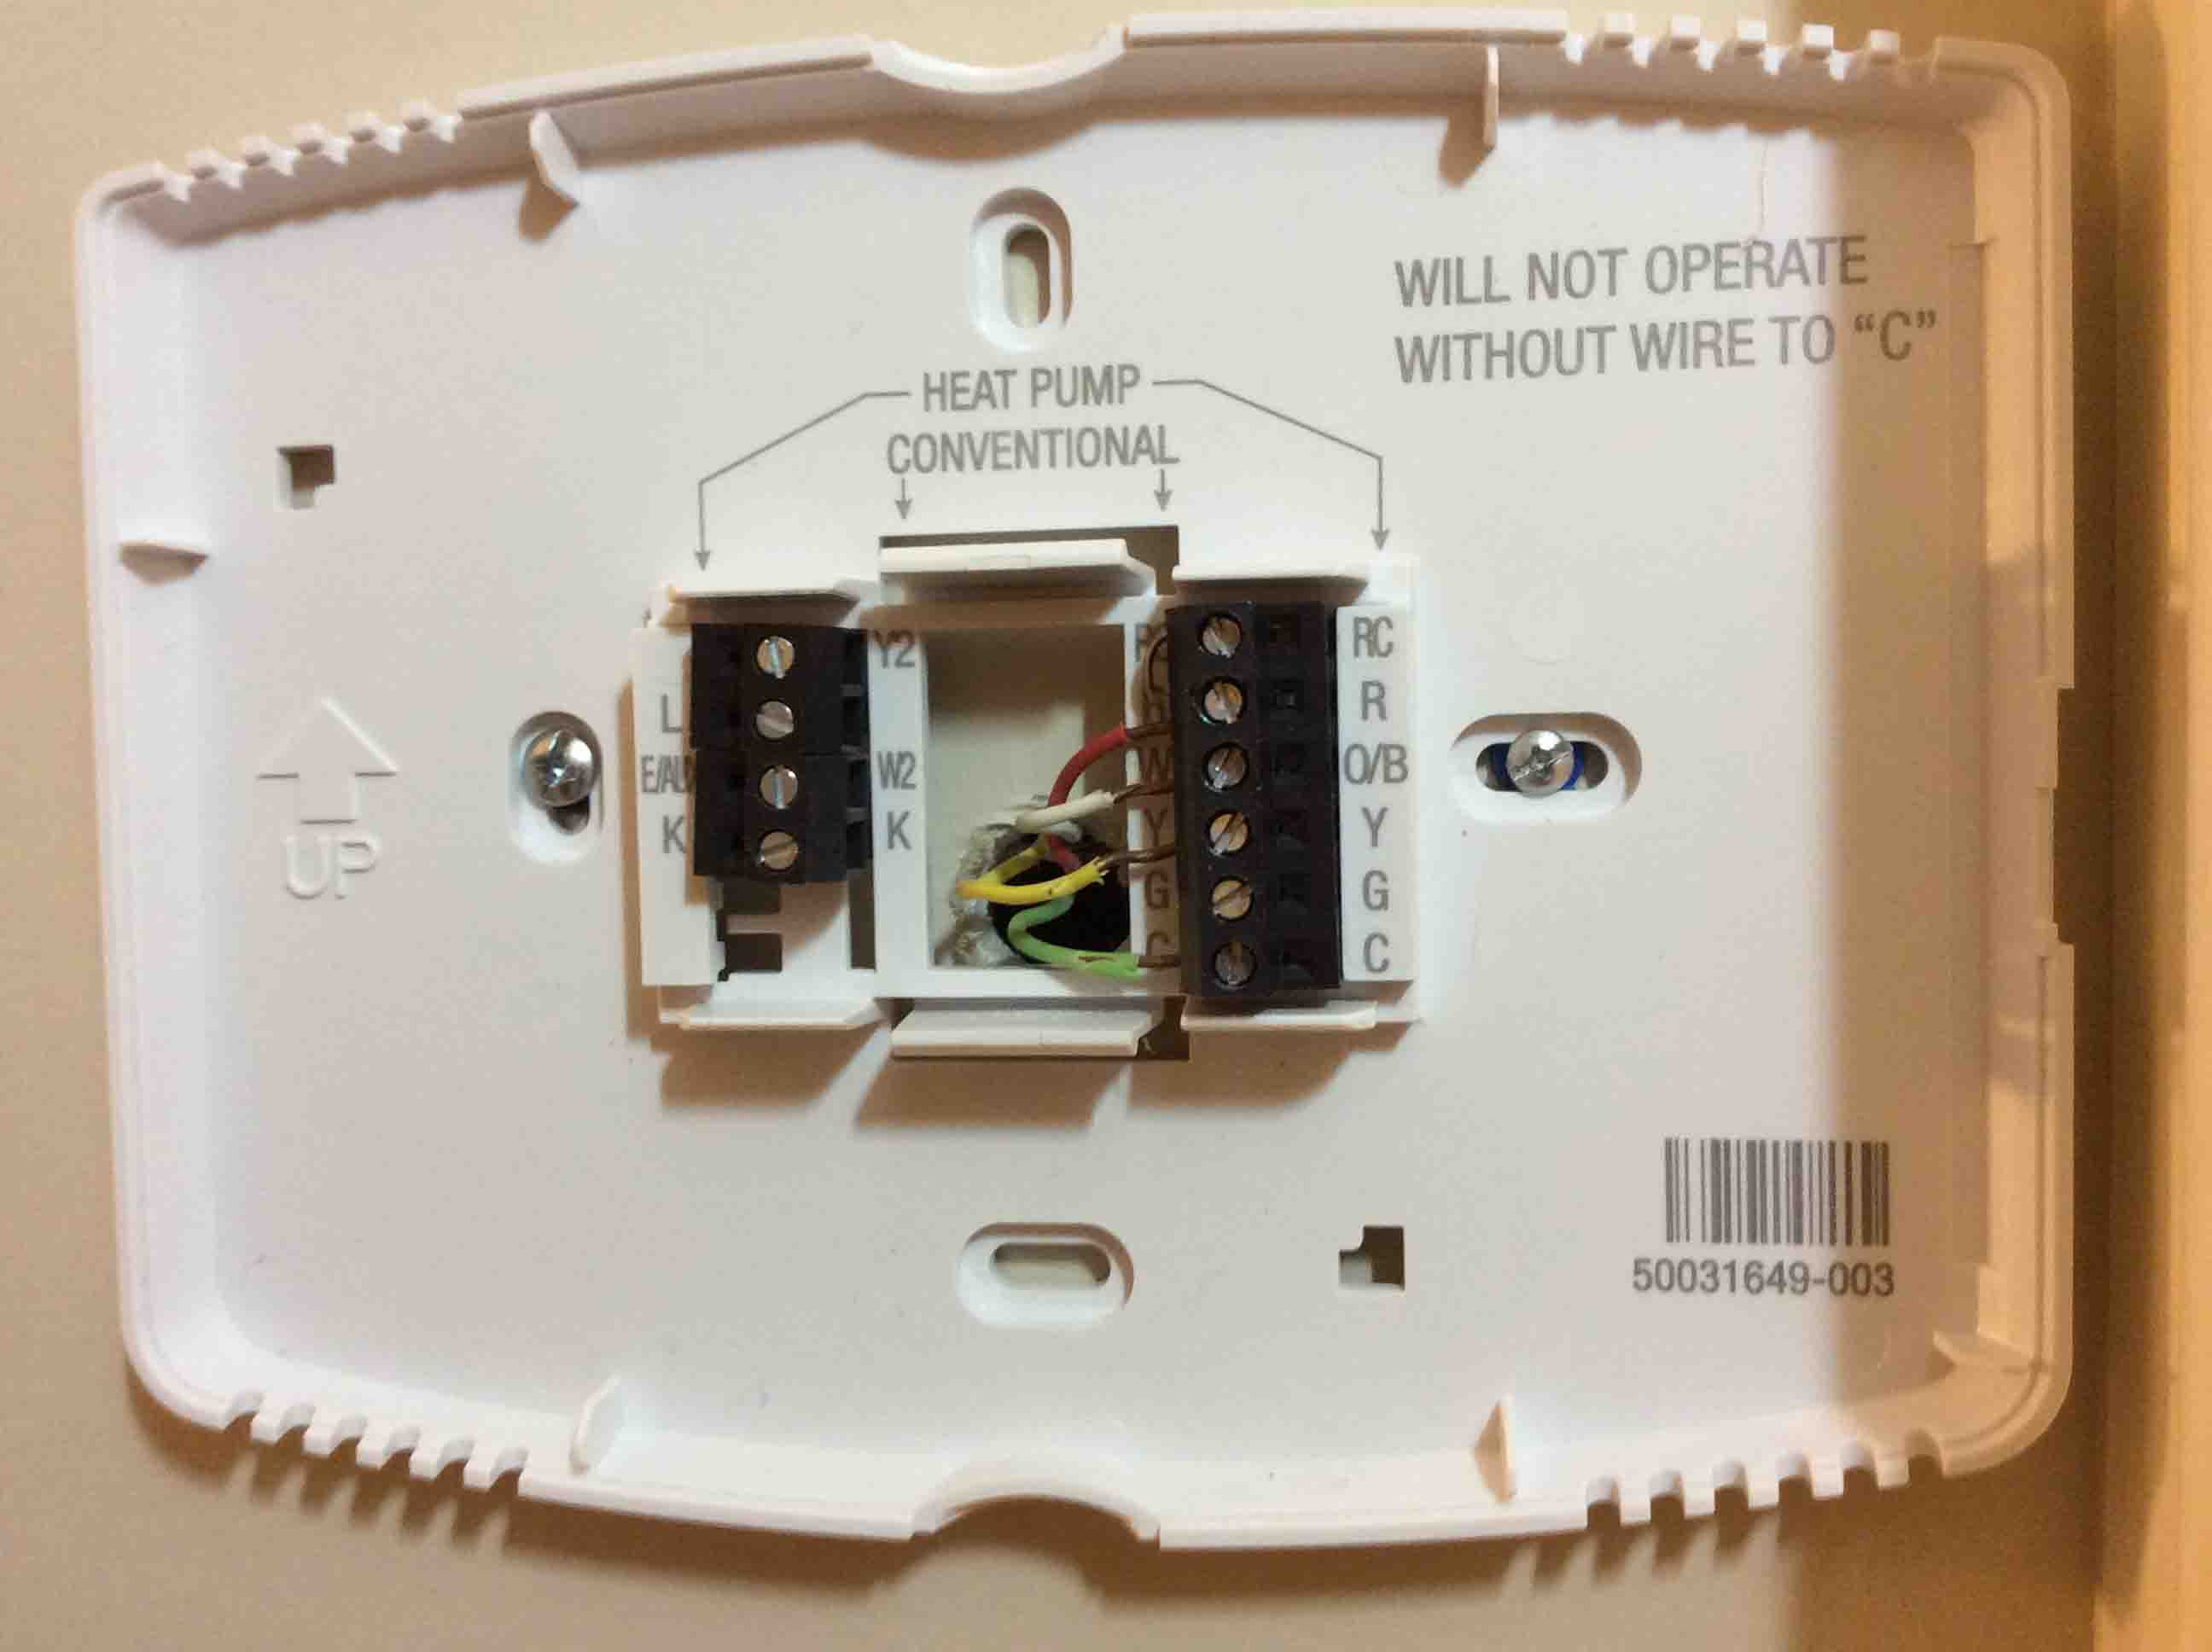 honeywell smart thermostat wiring instructions rth9580wf tom s tek rh tomstek us honeywell wifi 9000 thermostat wiring honeywell thermostat installation wifi